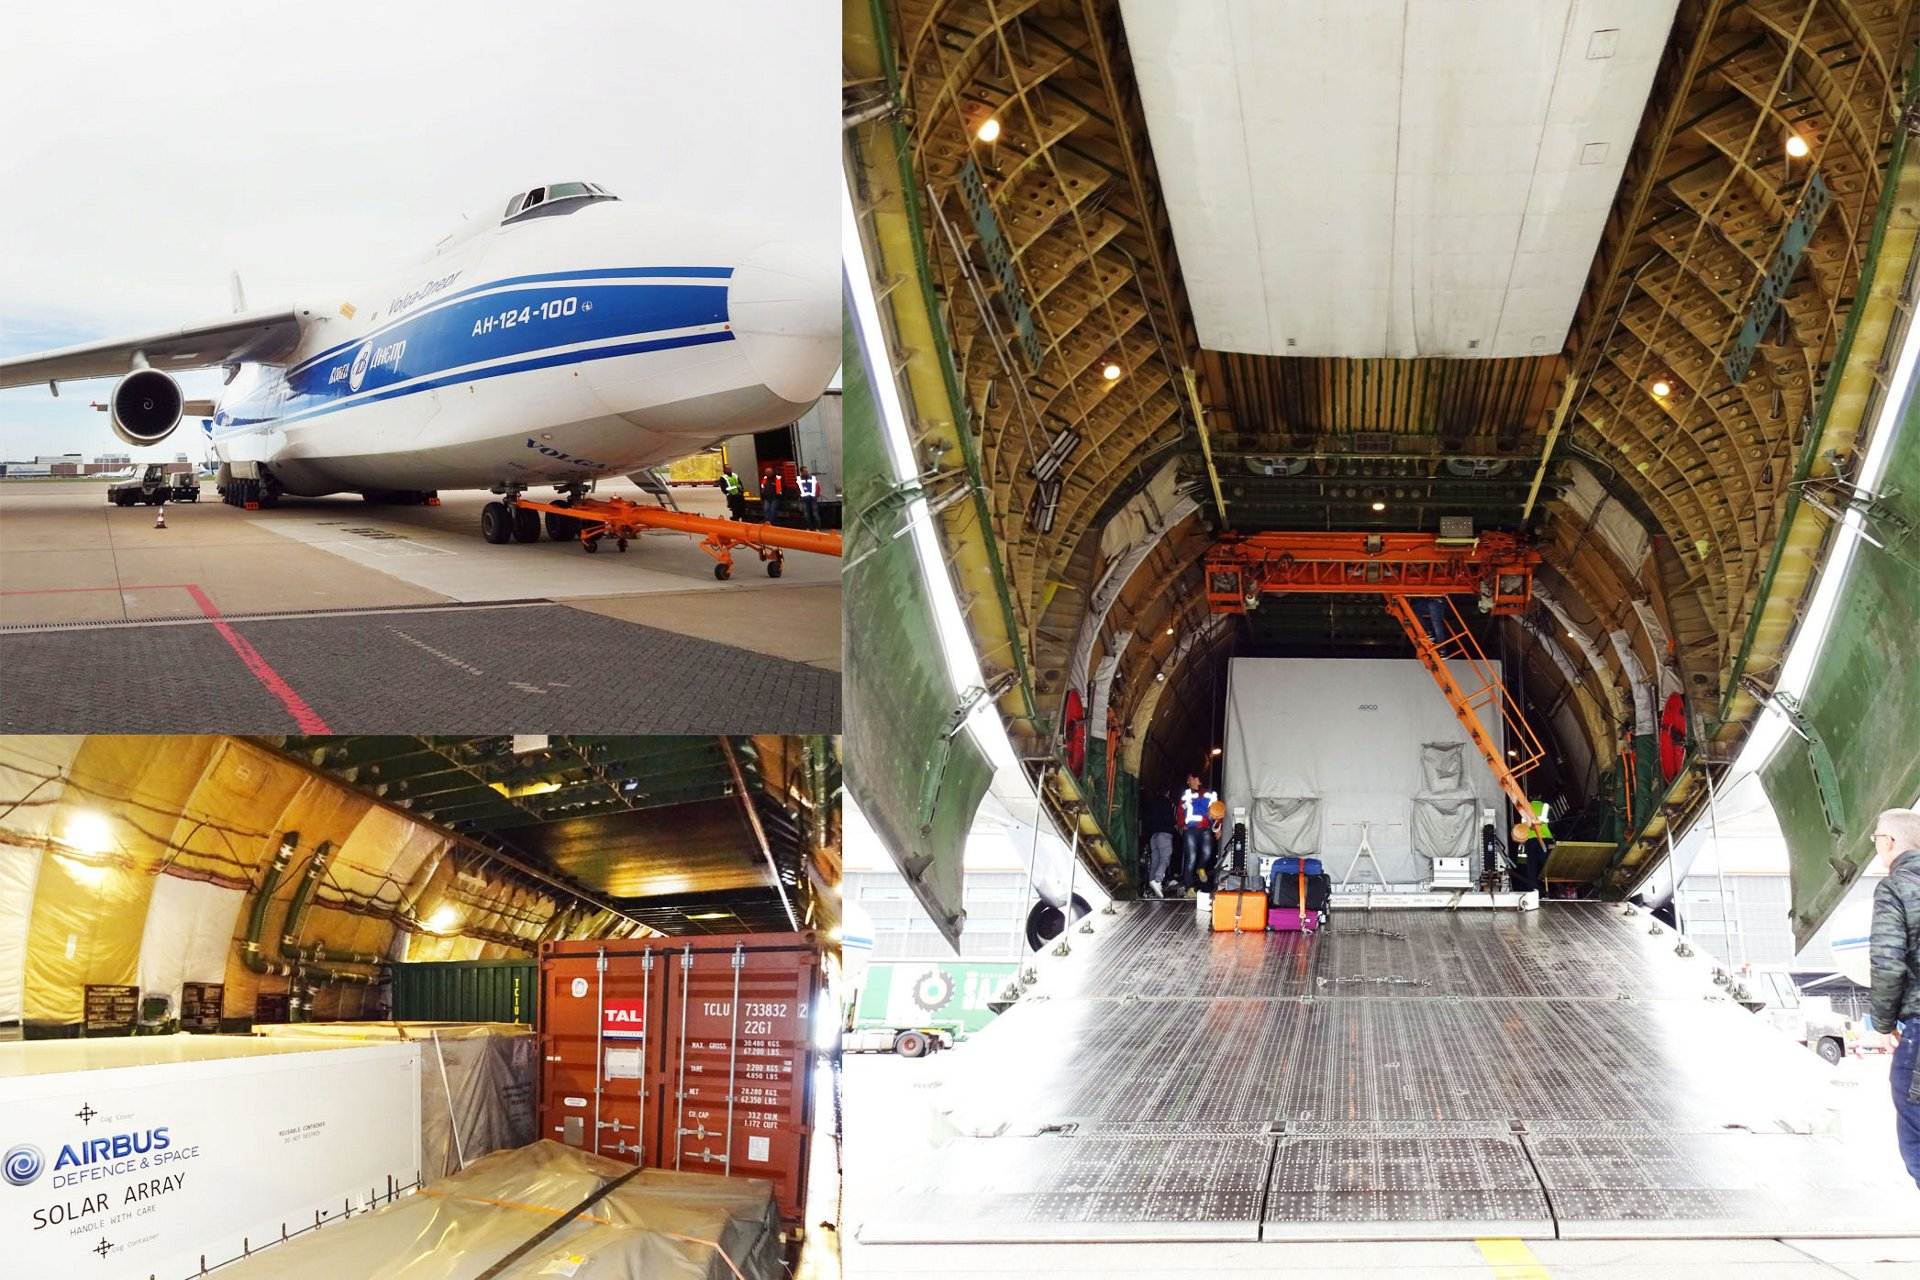 The first elements of the BepiColombo hardware were loaded into an Antonov An-124 cargo plane